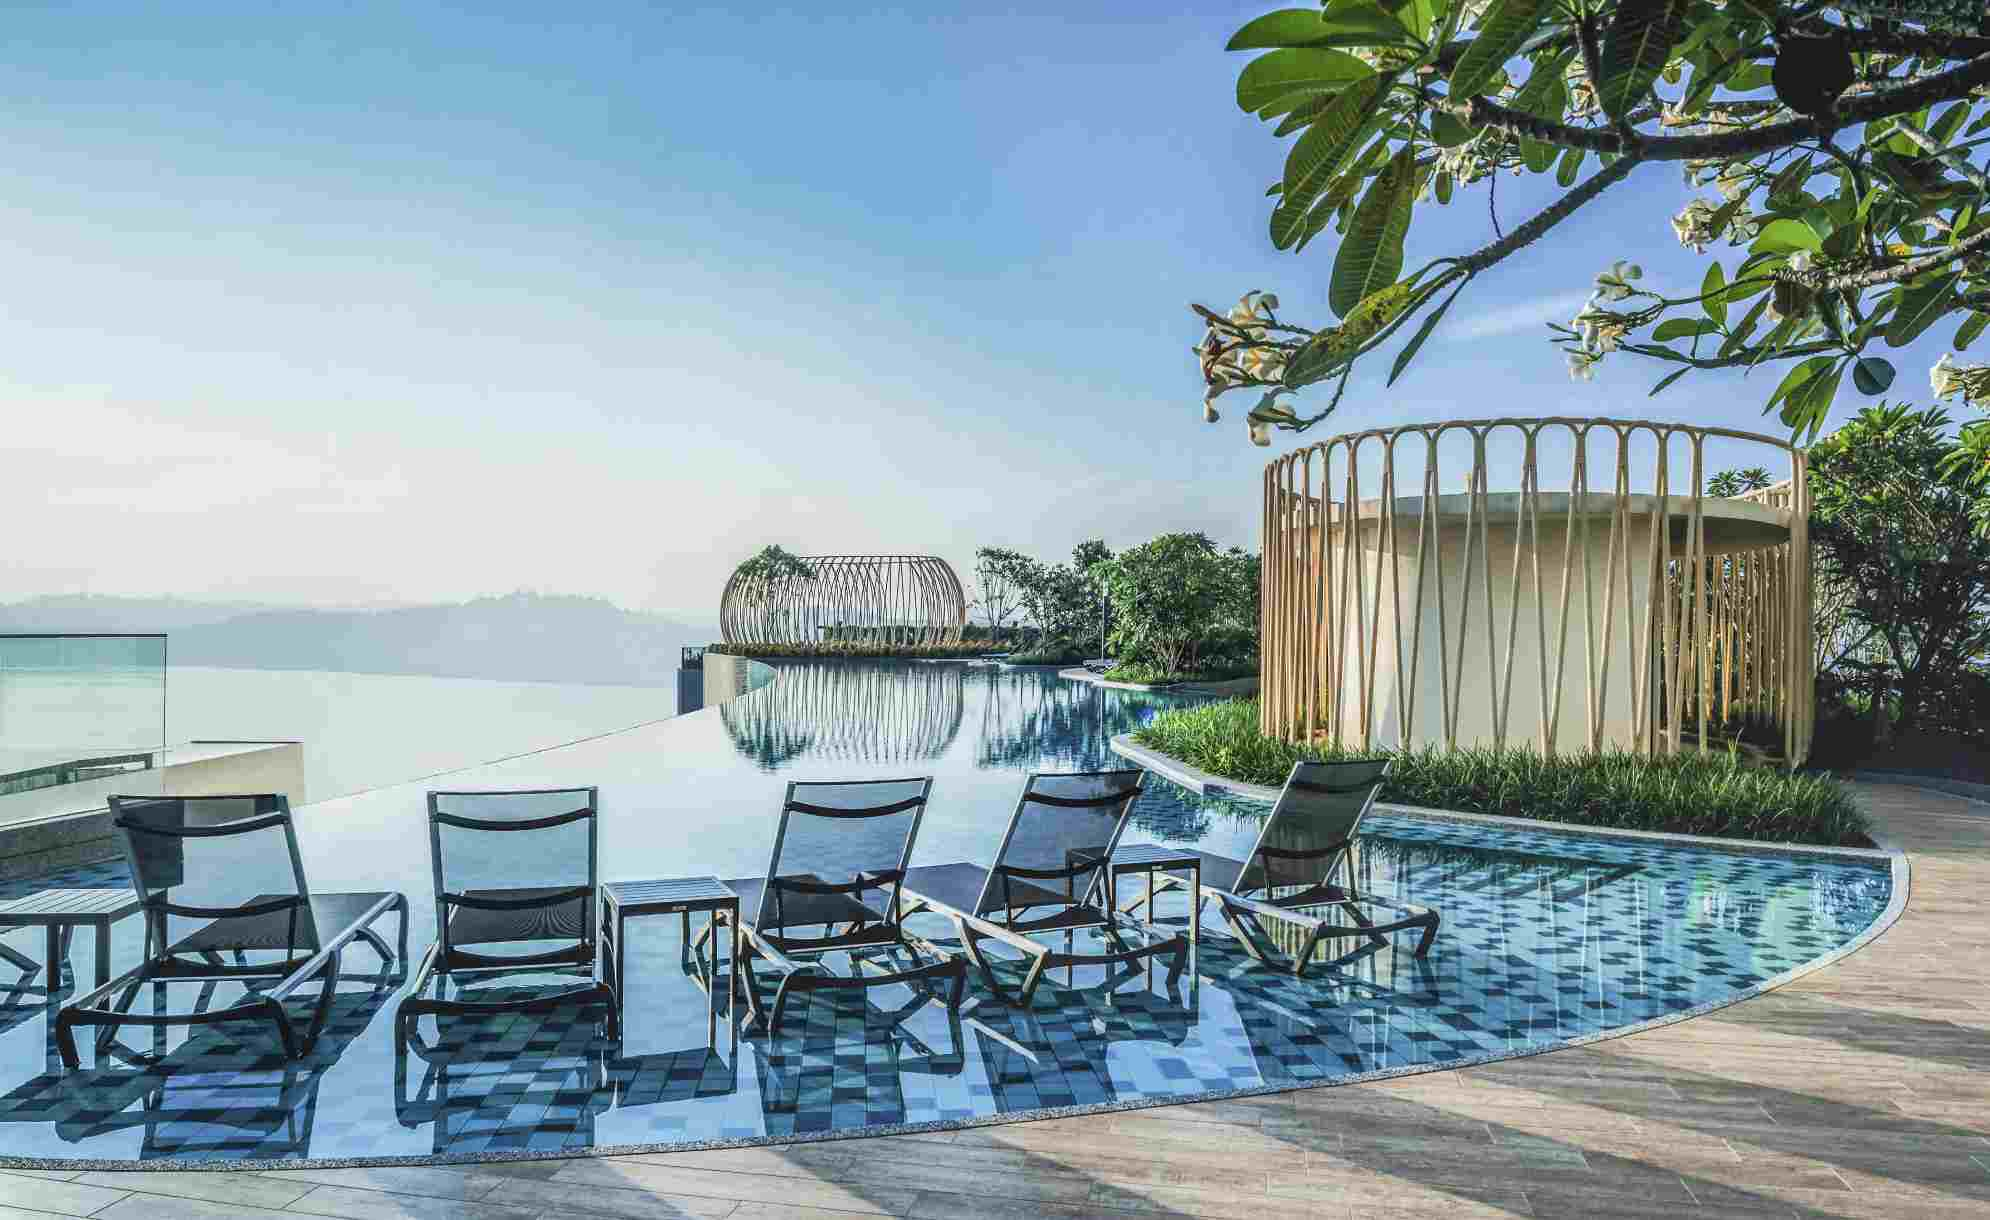 The infinity pool at Puteri Cove Residences